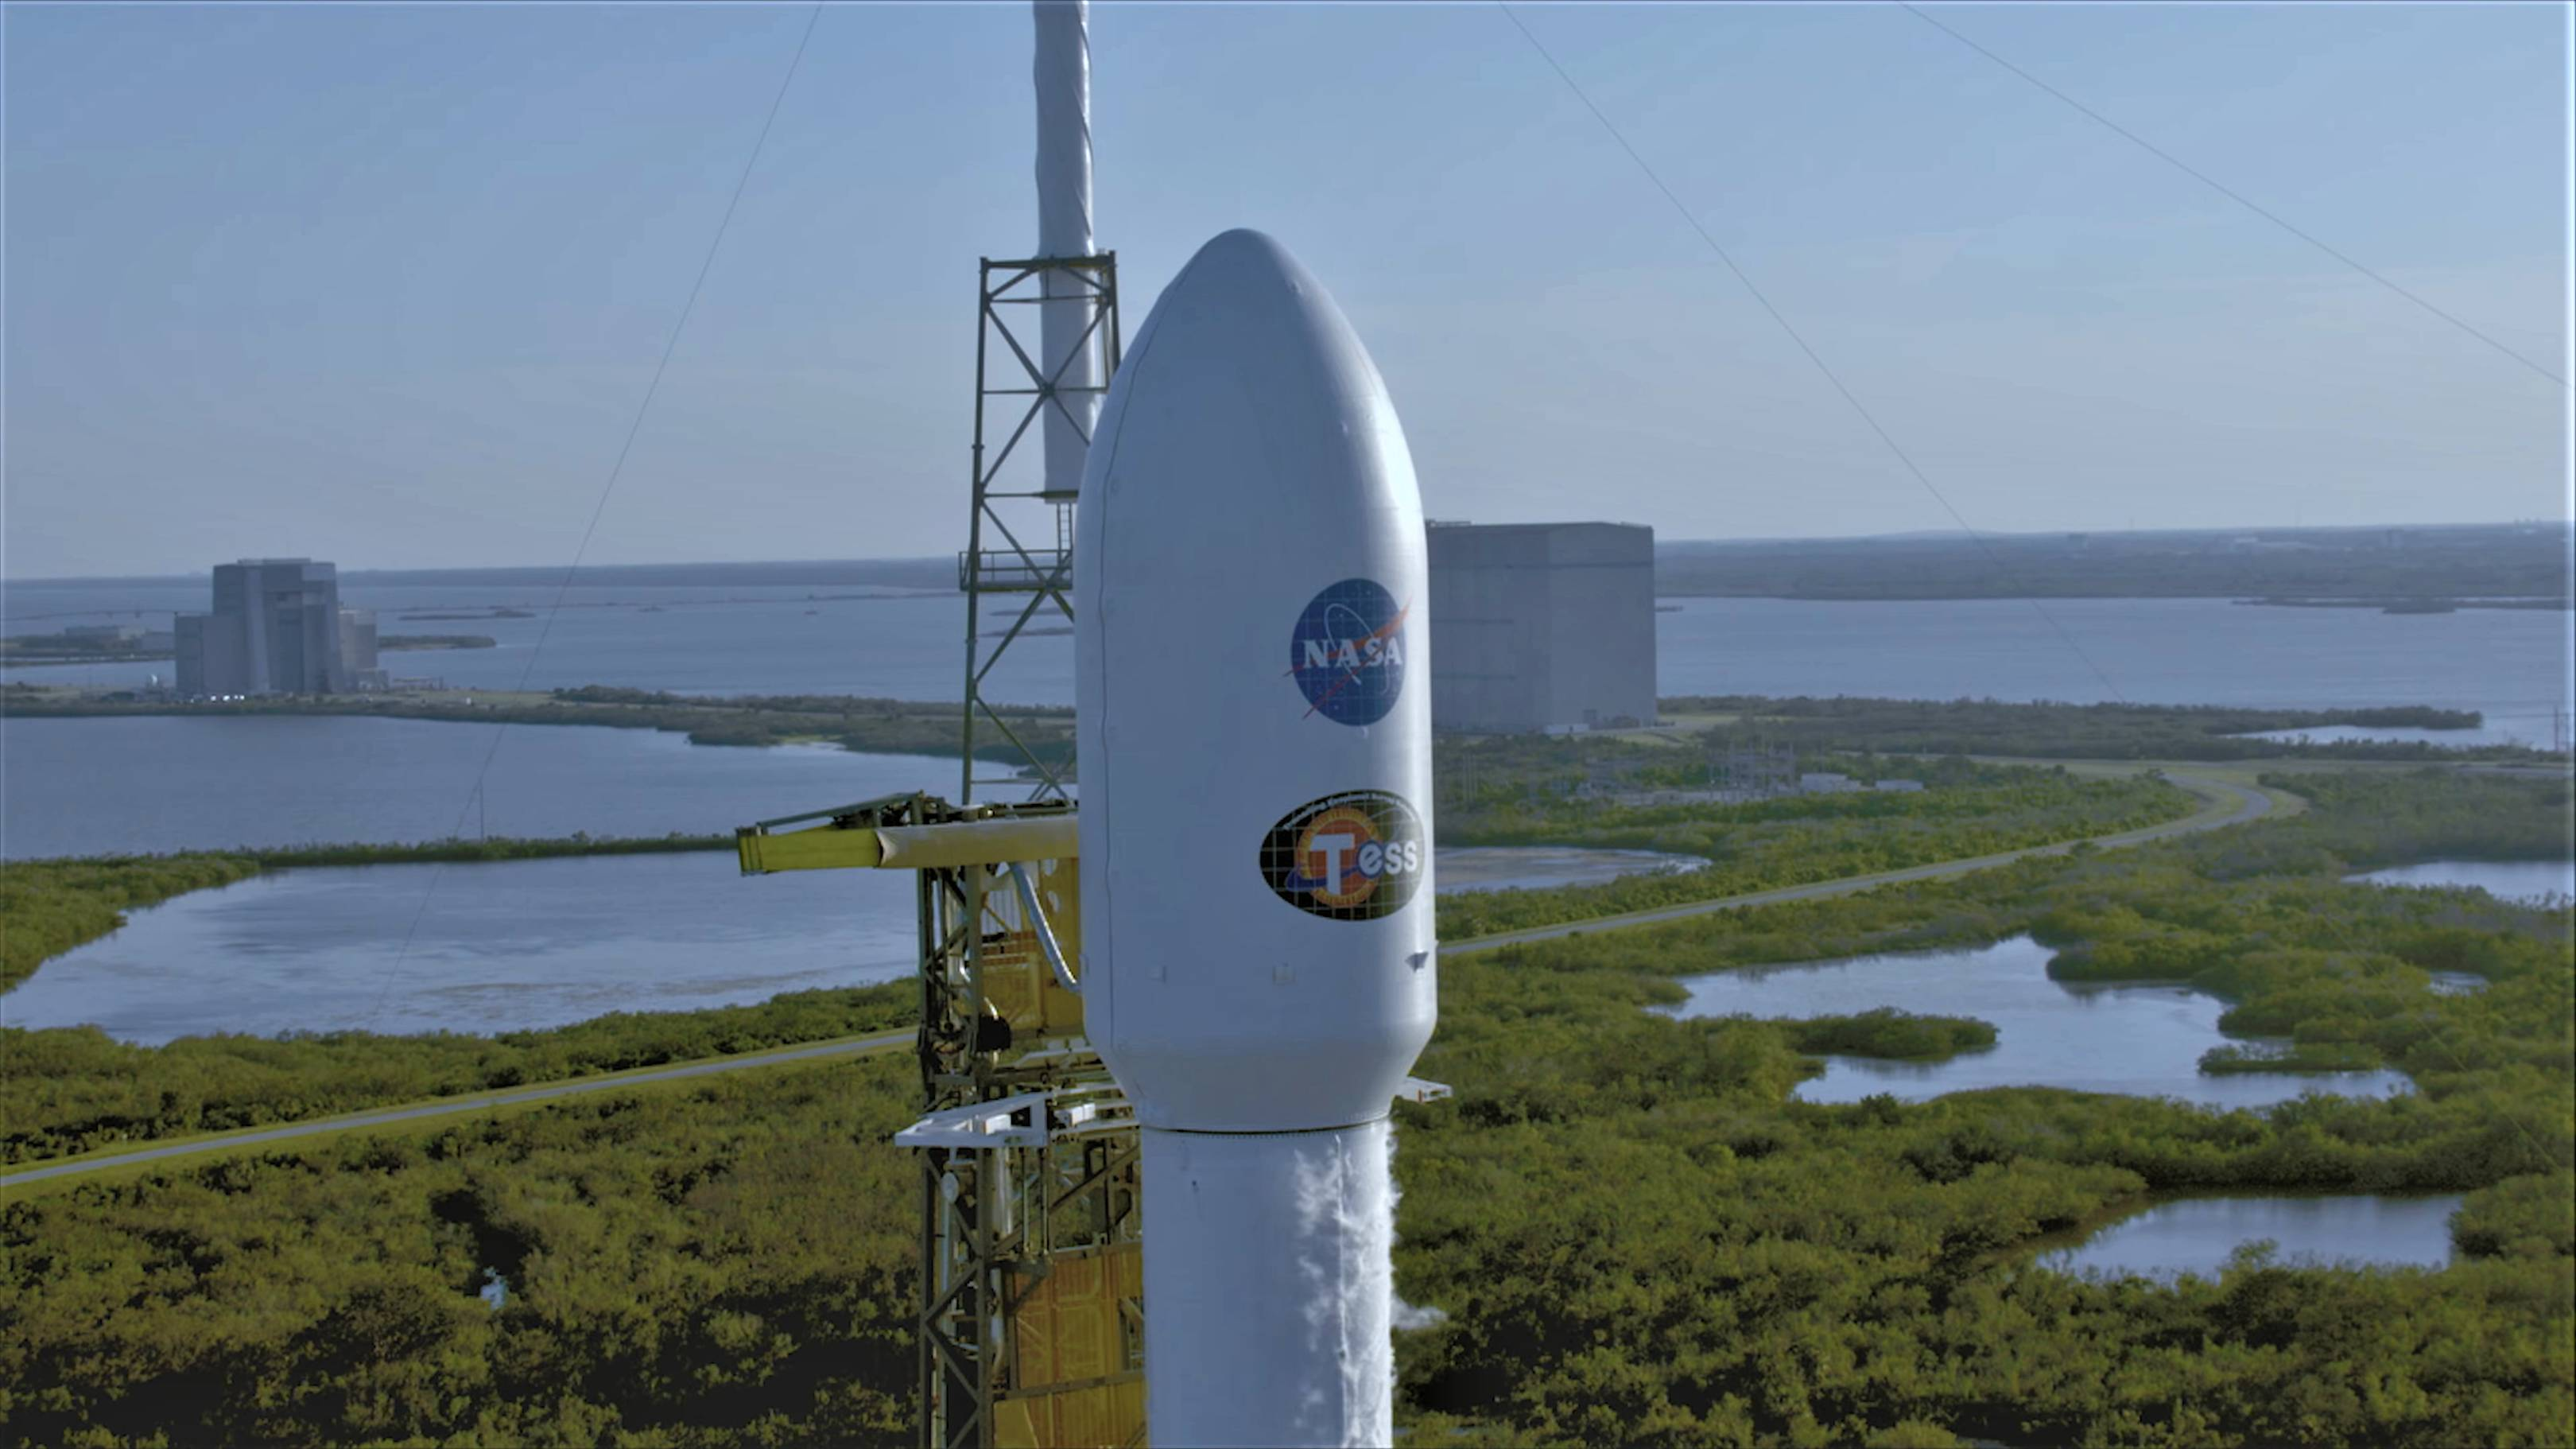 Falcon 9 B1045 TESS prelaunch LC40 (NASA)(c)